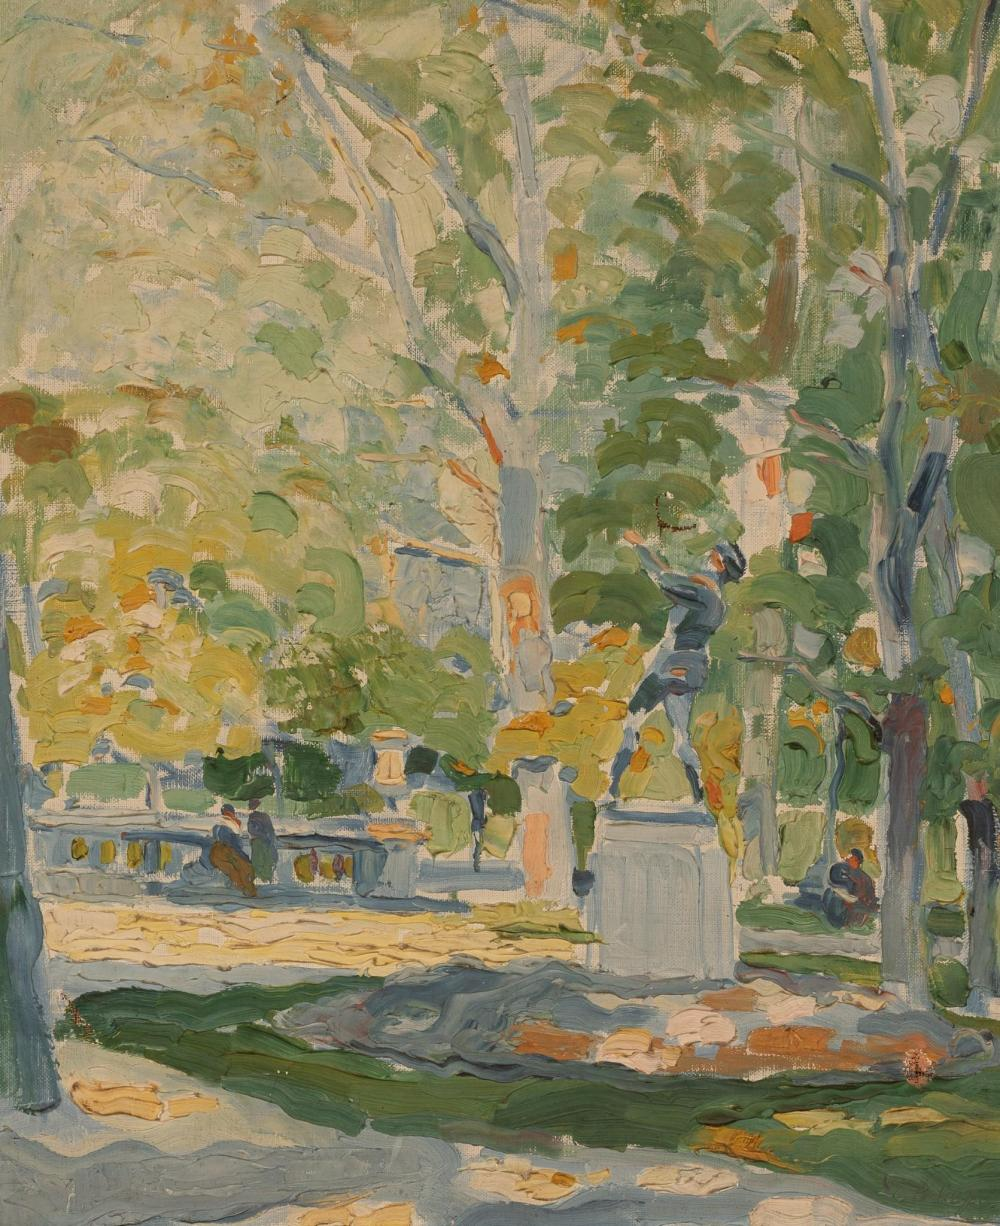 "Sold Price: Pierre De Belay (1890-1947), Park Scene, oil on canvas, 23.25 x  19.25"" - July 6, 0120 12:00 PM CDT"